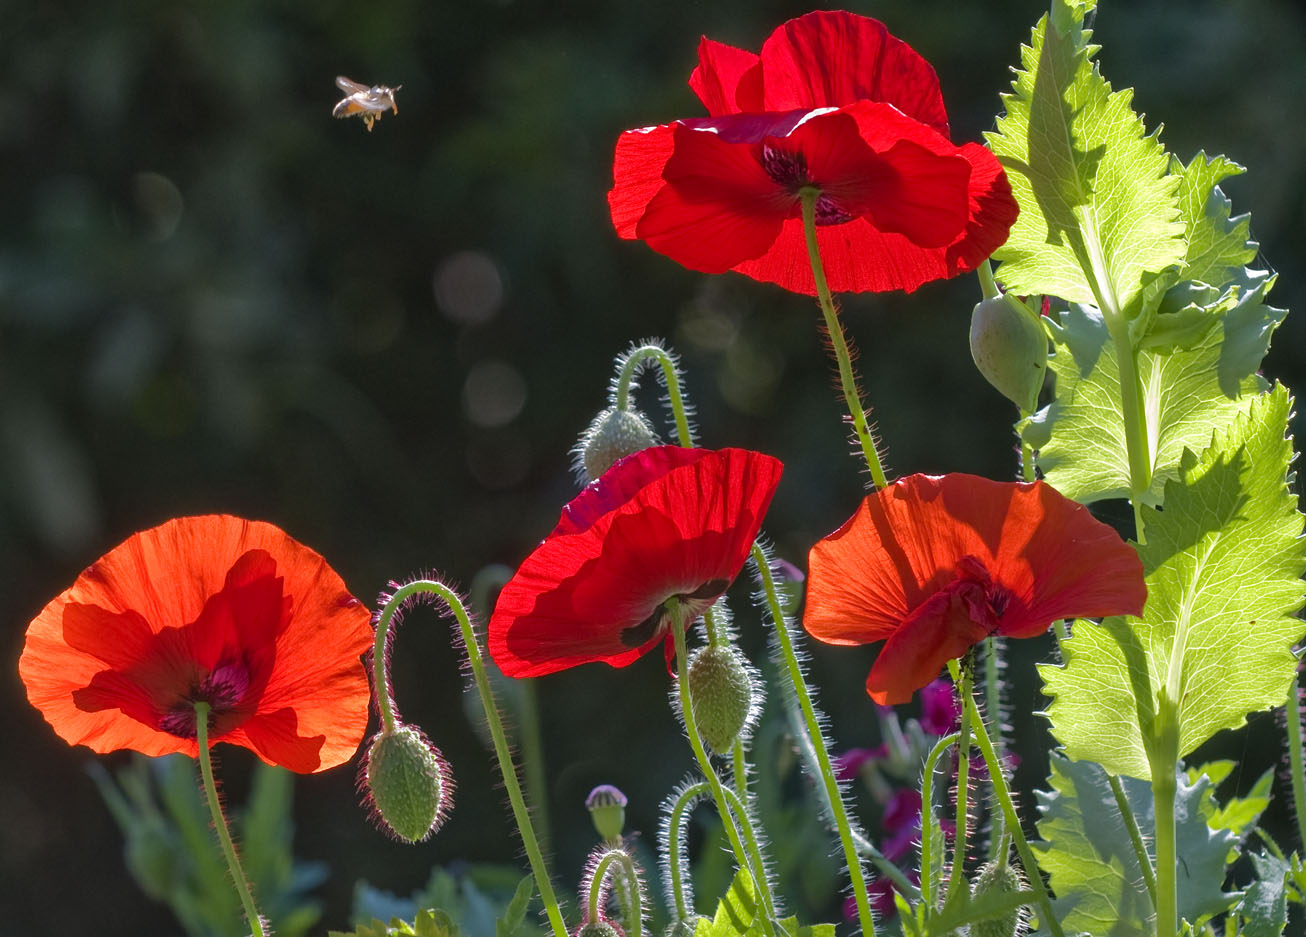 Photo of poppies courtesy of Jackie Delaney